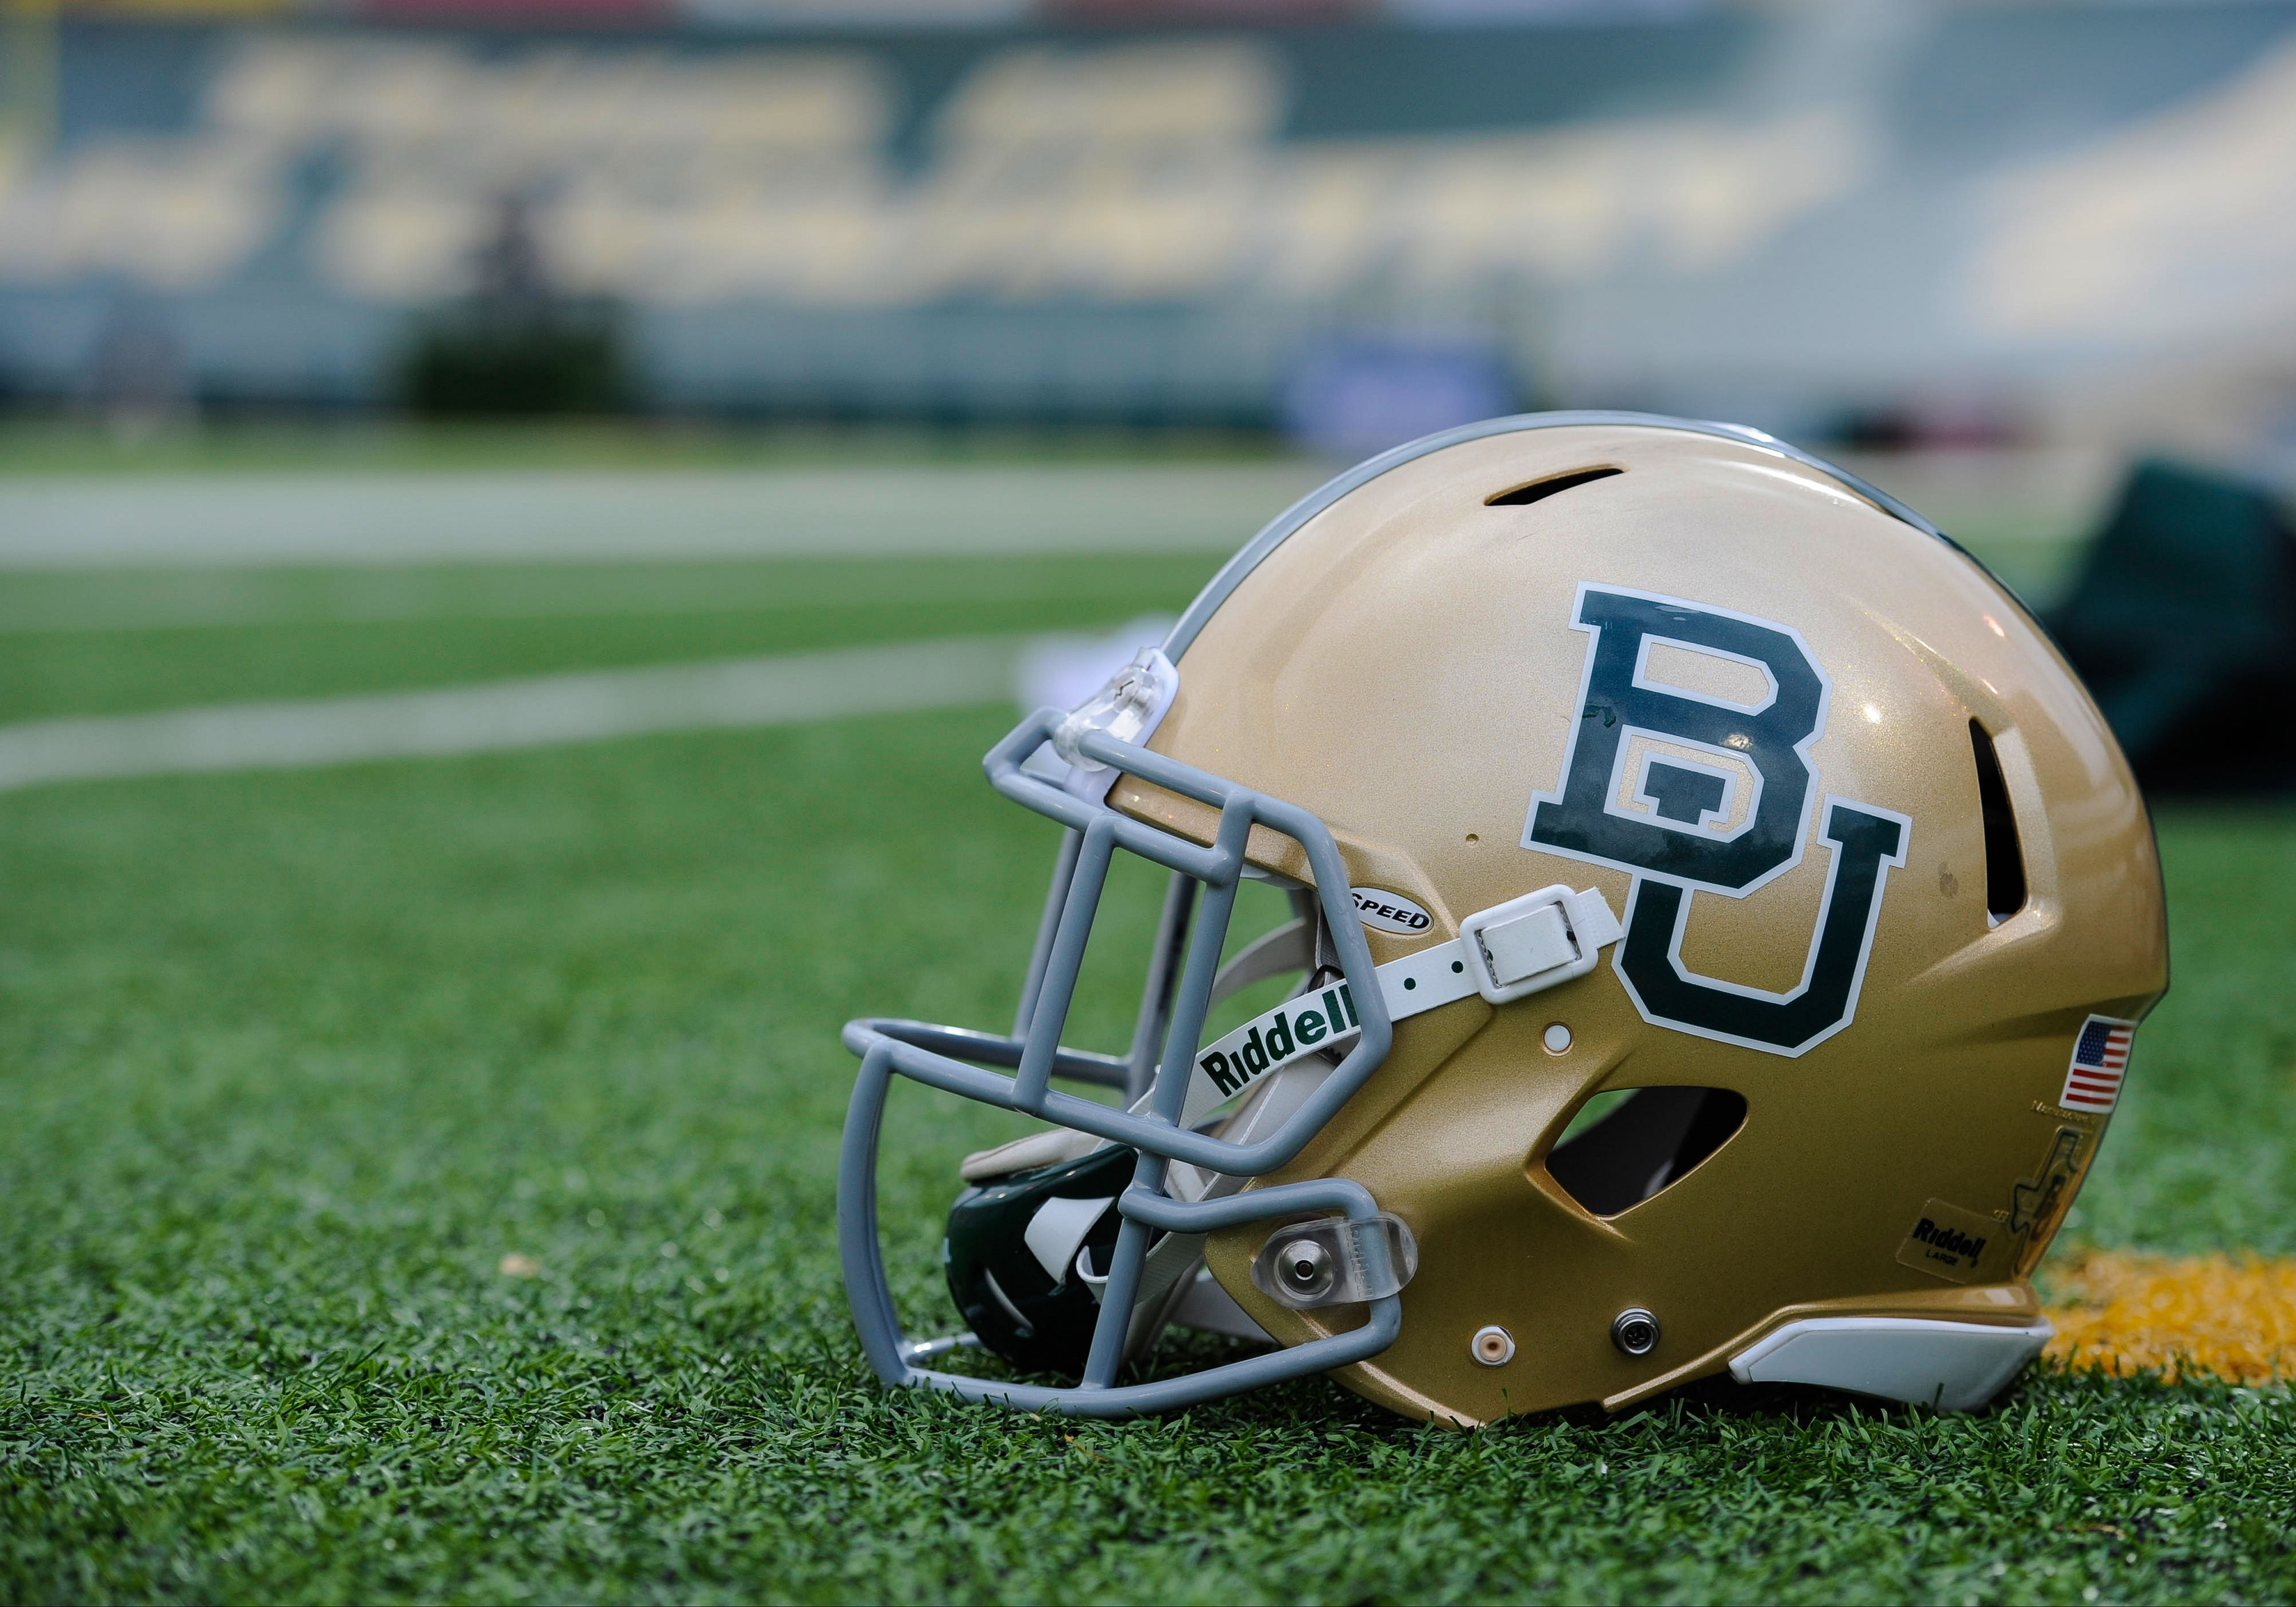 baylor football - photo #26